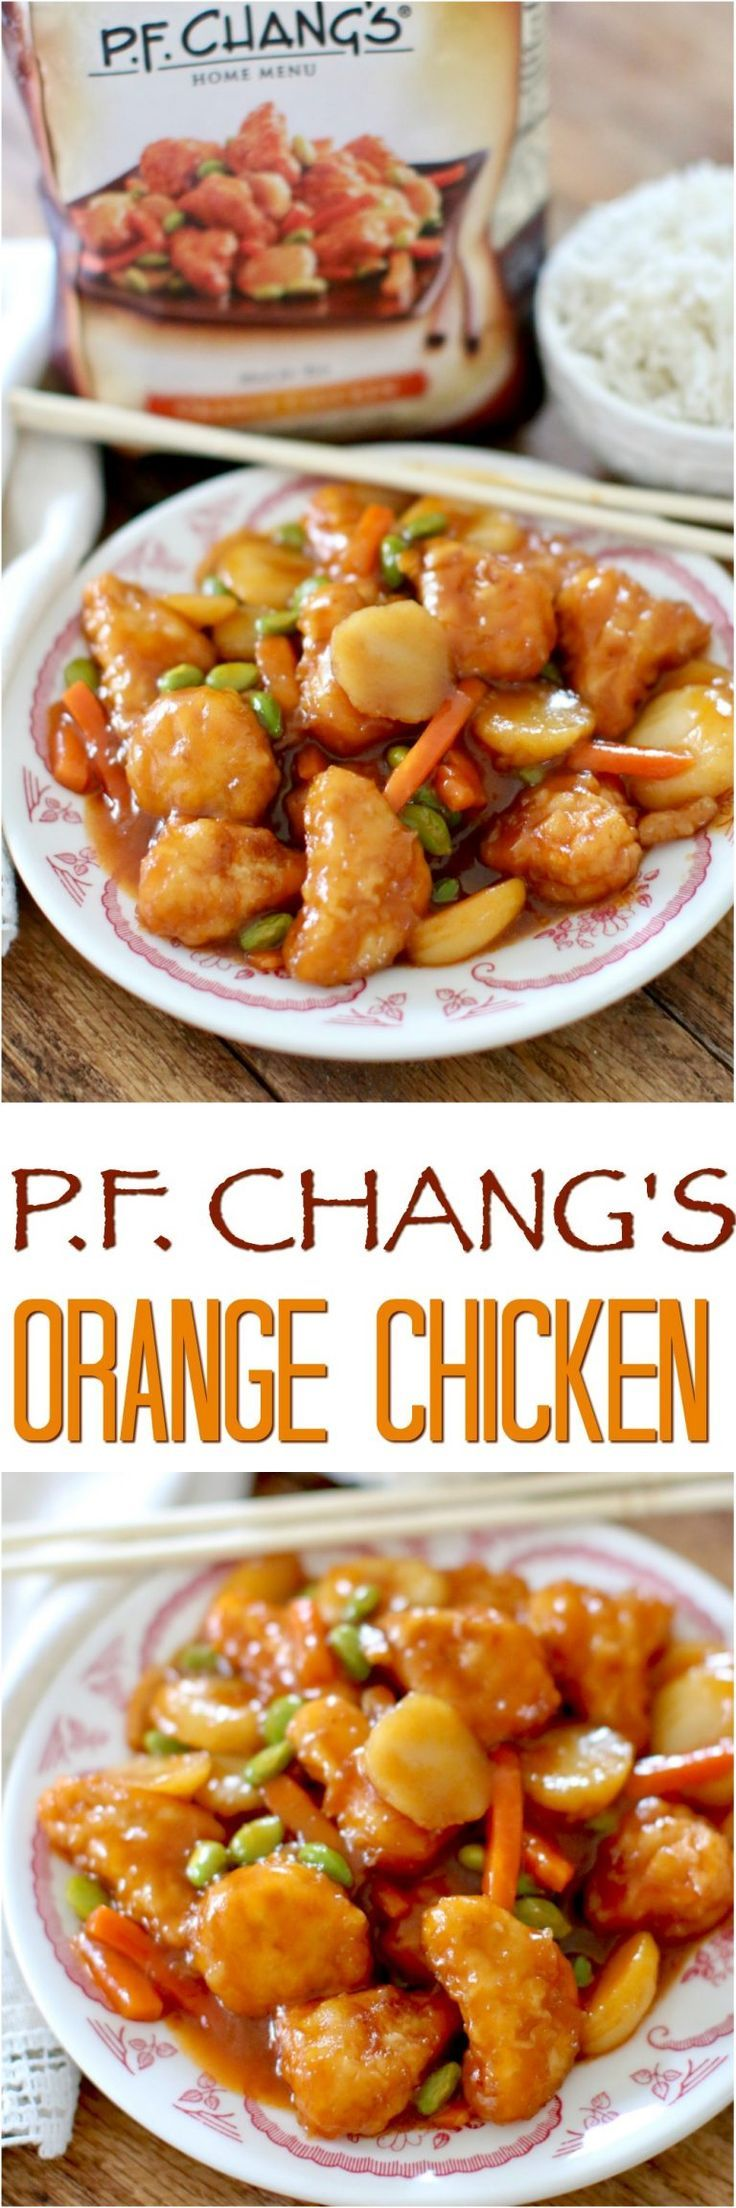 P.F. Chang's Home Menu Orange Chicken featured at The Country Cook #dinner #chicken #easy